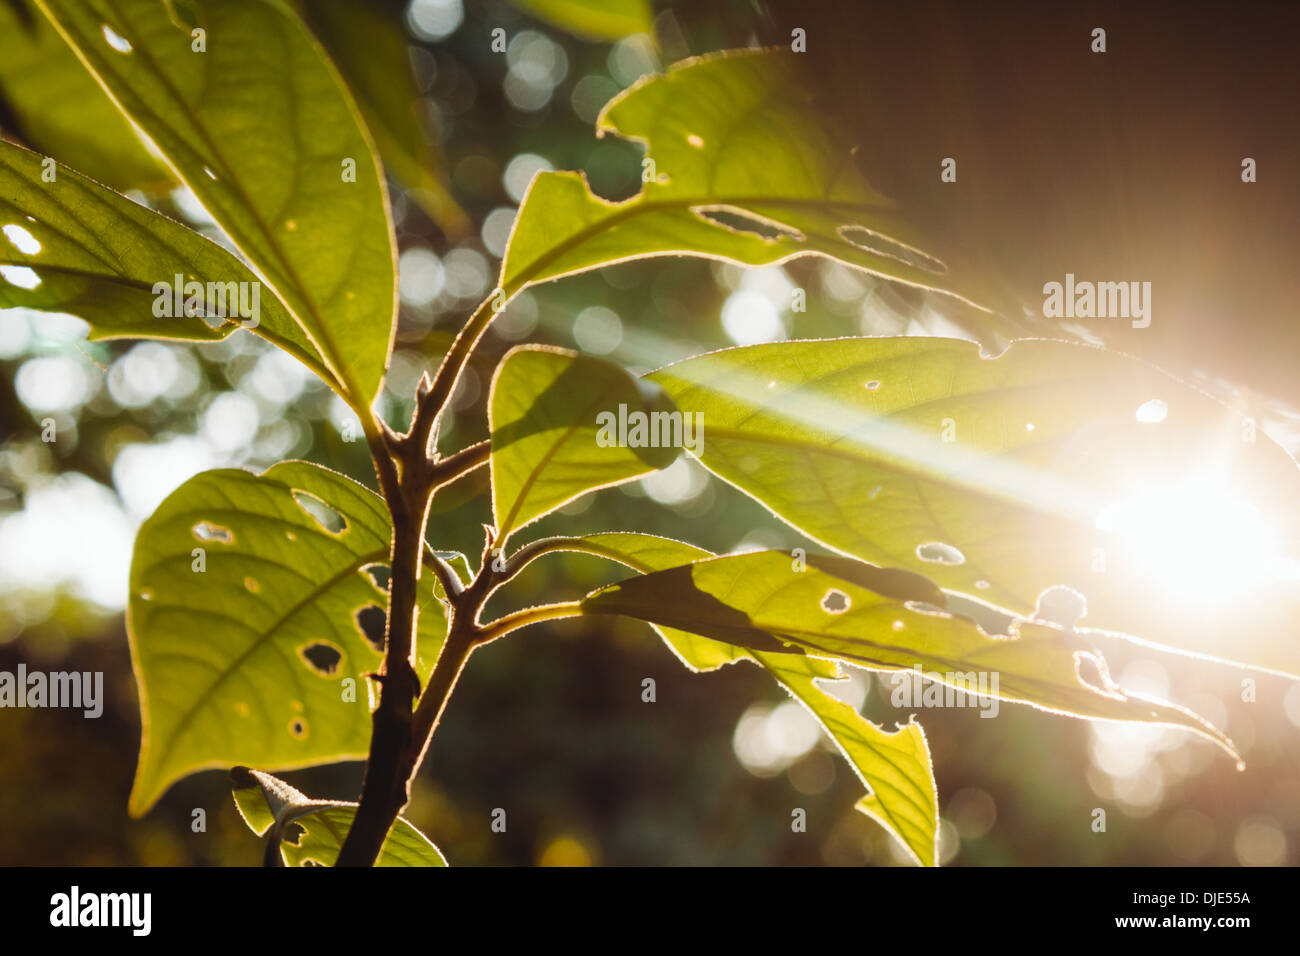 Tree leaves with sun glare. - Stock Image